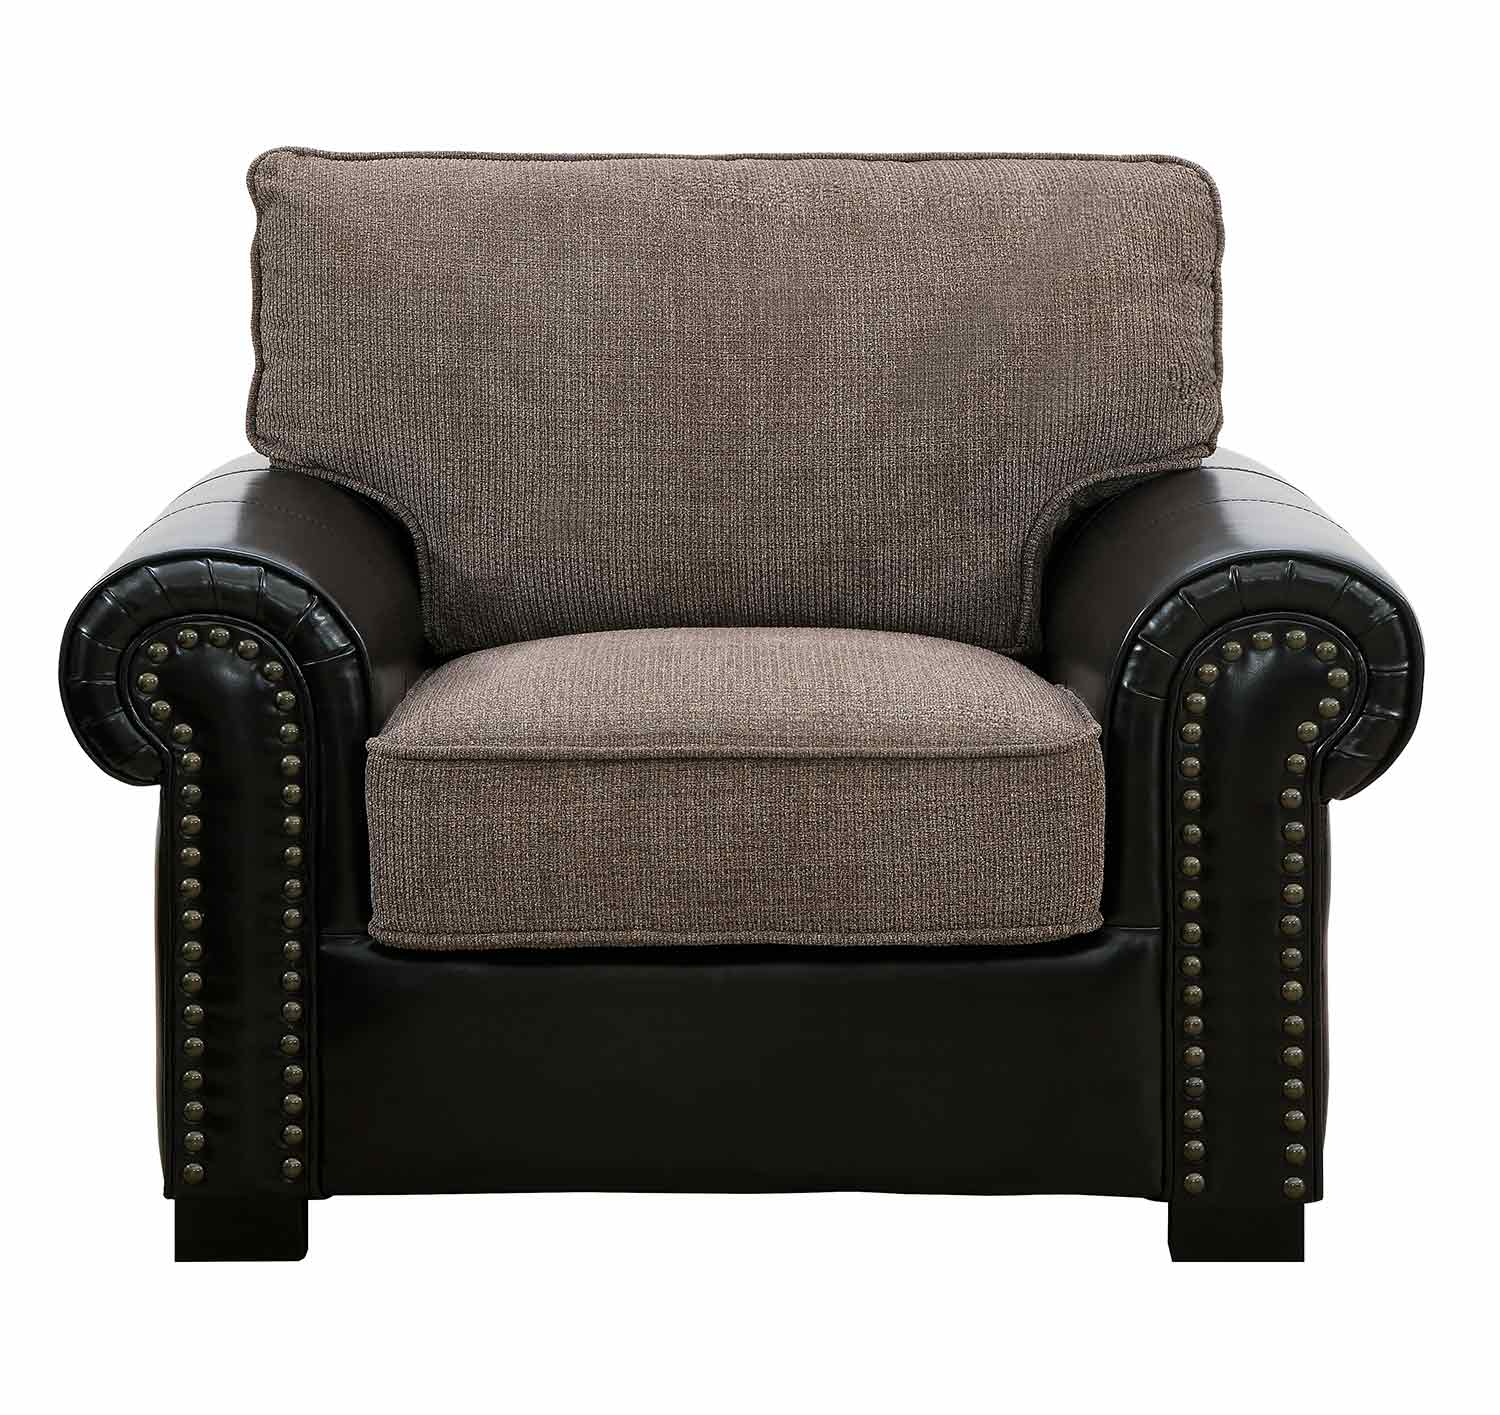 Homelegance Boykin Chair - Brown Chenille